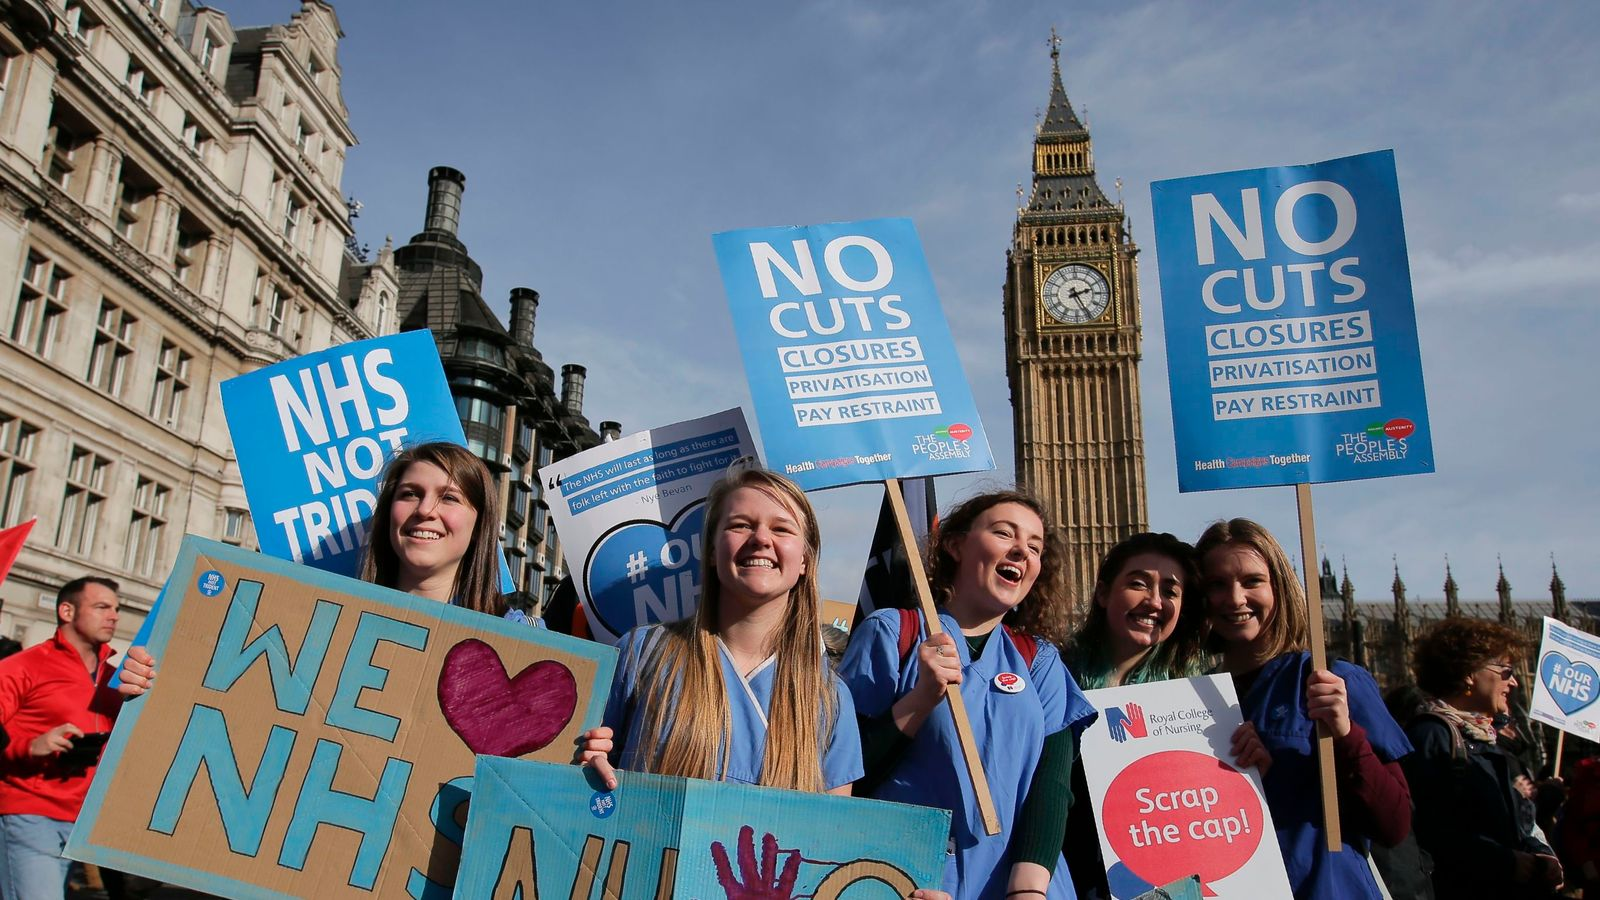 Protesters gather in Westminster during a demonstration in support of the NHS